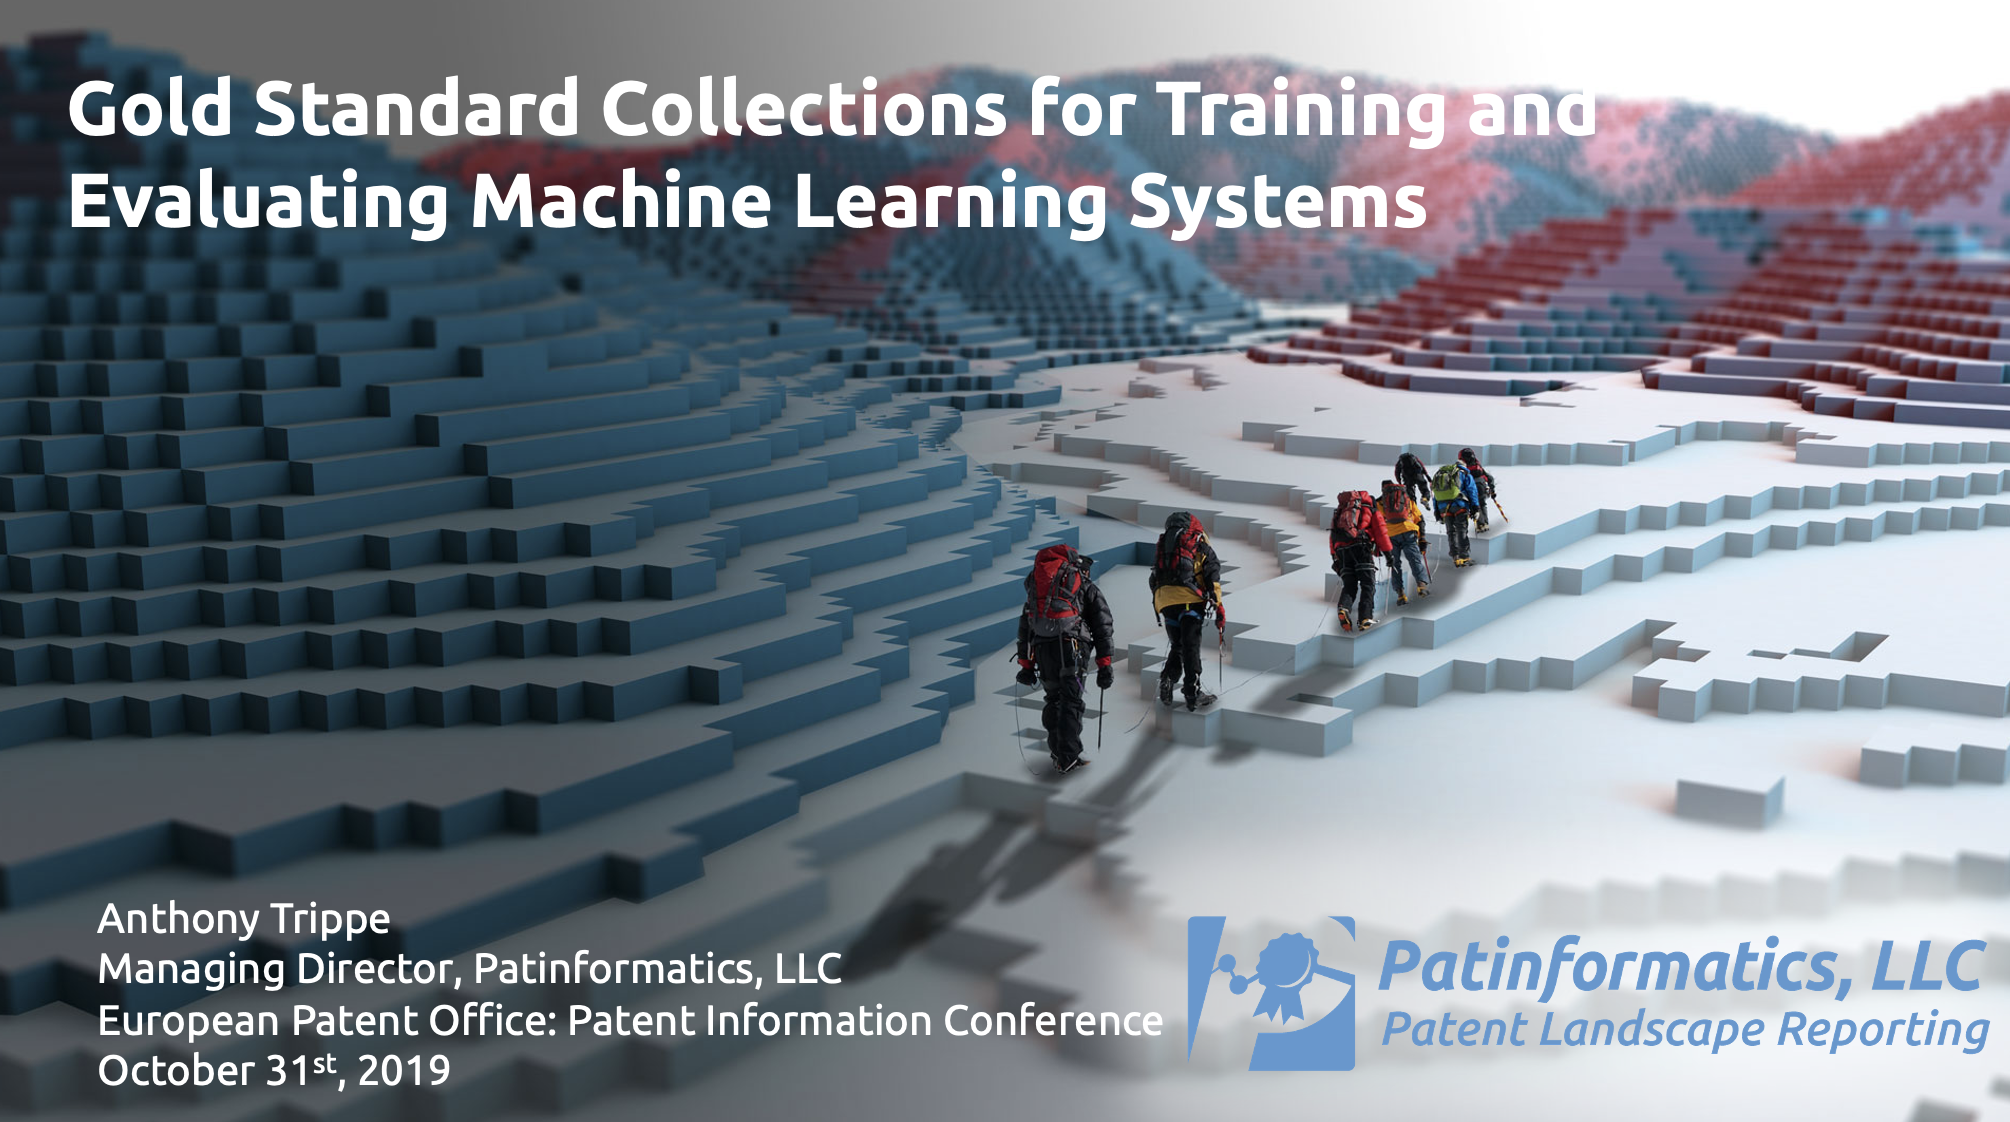 Gold Standard Collections for Training and Evaluating Machine Learning Systems EPO PIC 2019